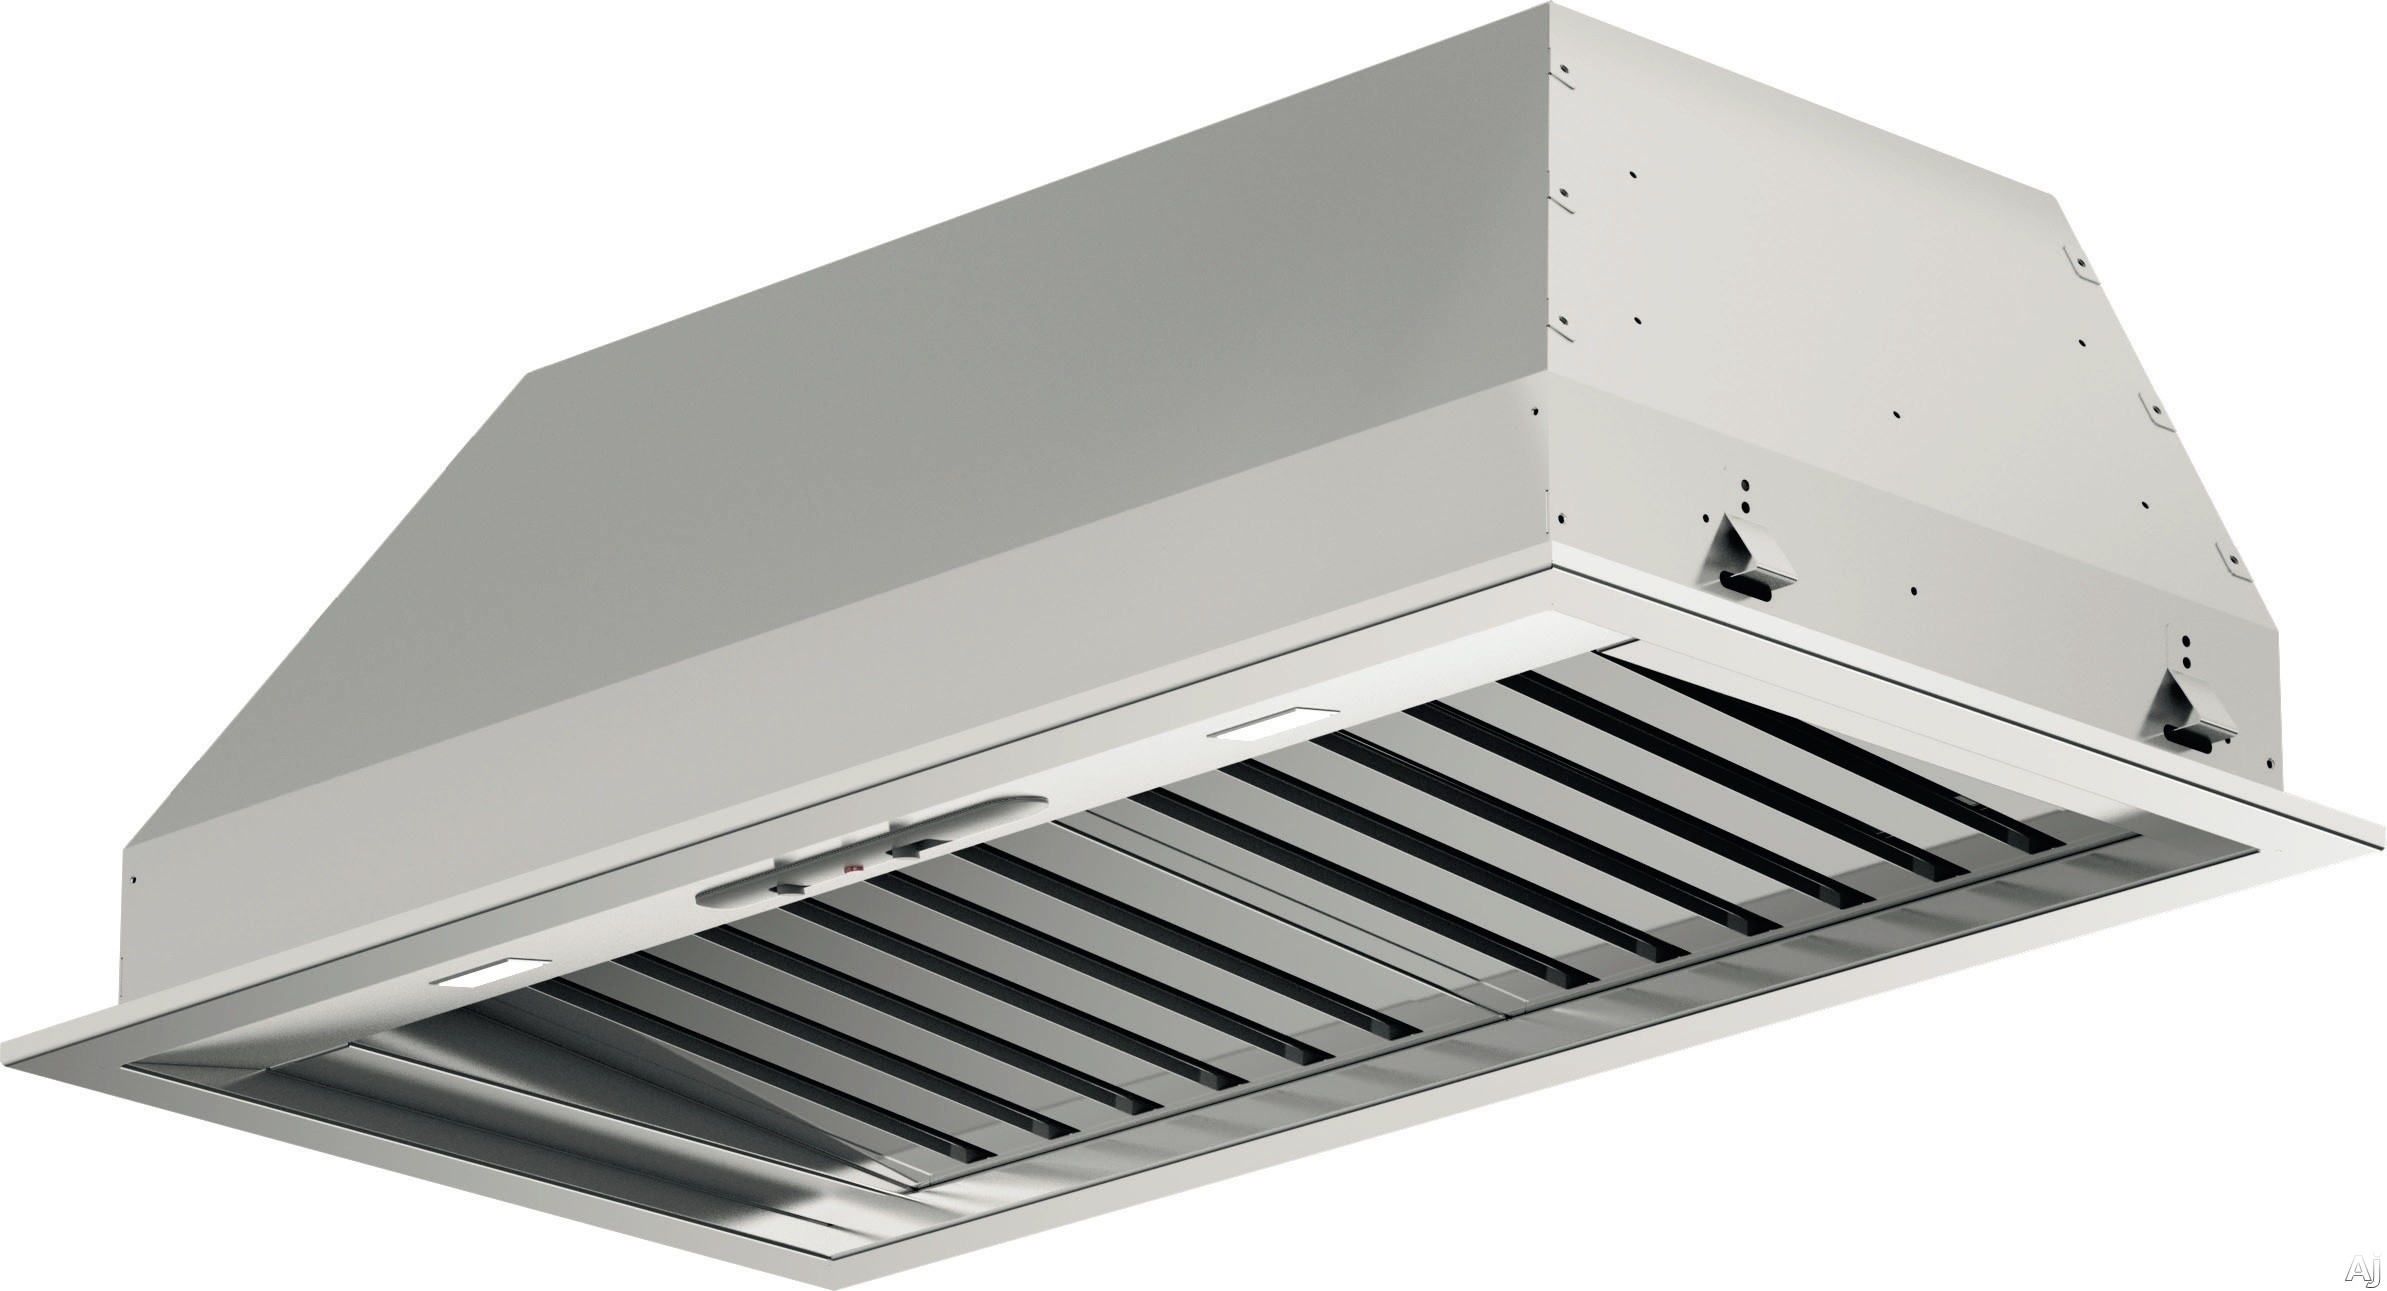 Fulgor Milano F6BP34S1 34 Inch Insert with 600 CFM Internal Blower Stainless Steel Baffle Filters Mechanical Controls 4 Speed Blower Fan LED Lighting and Recirculating Options